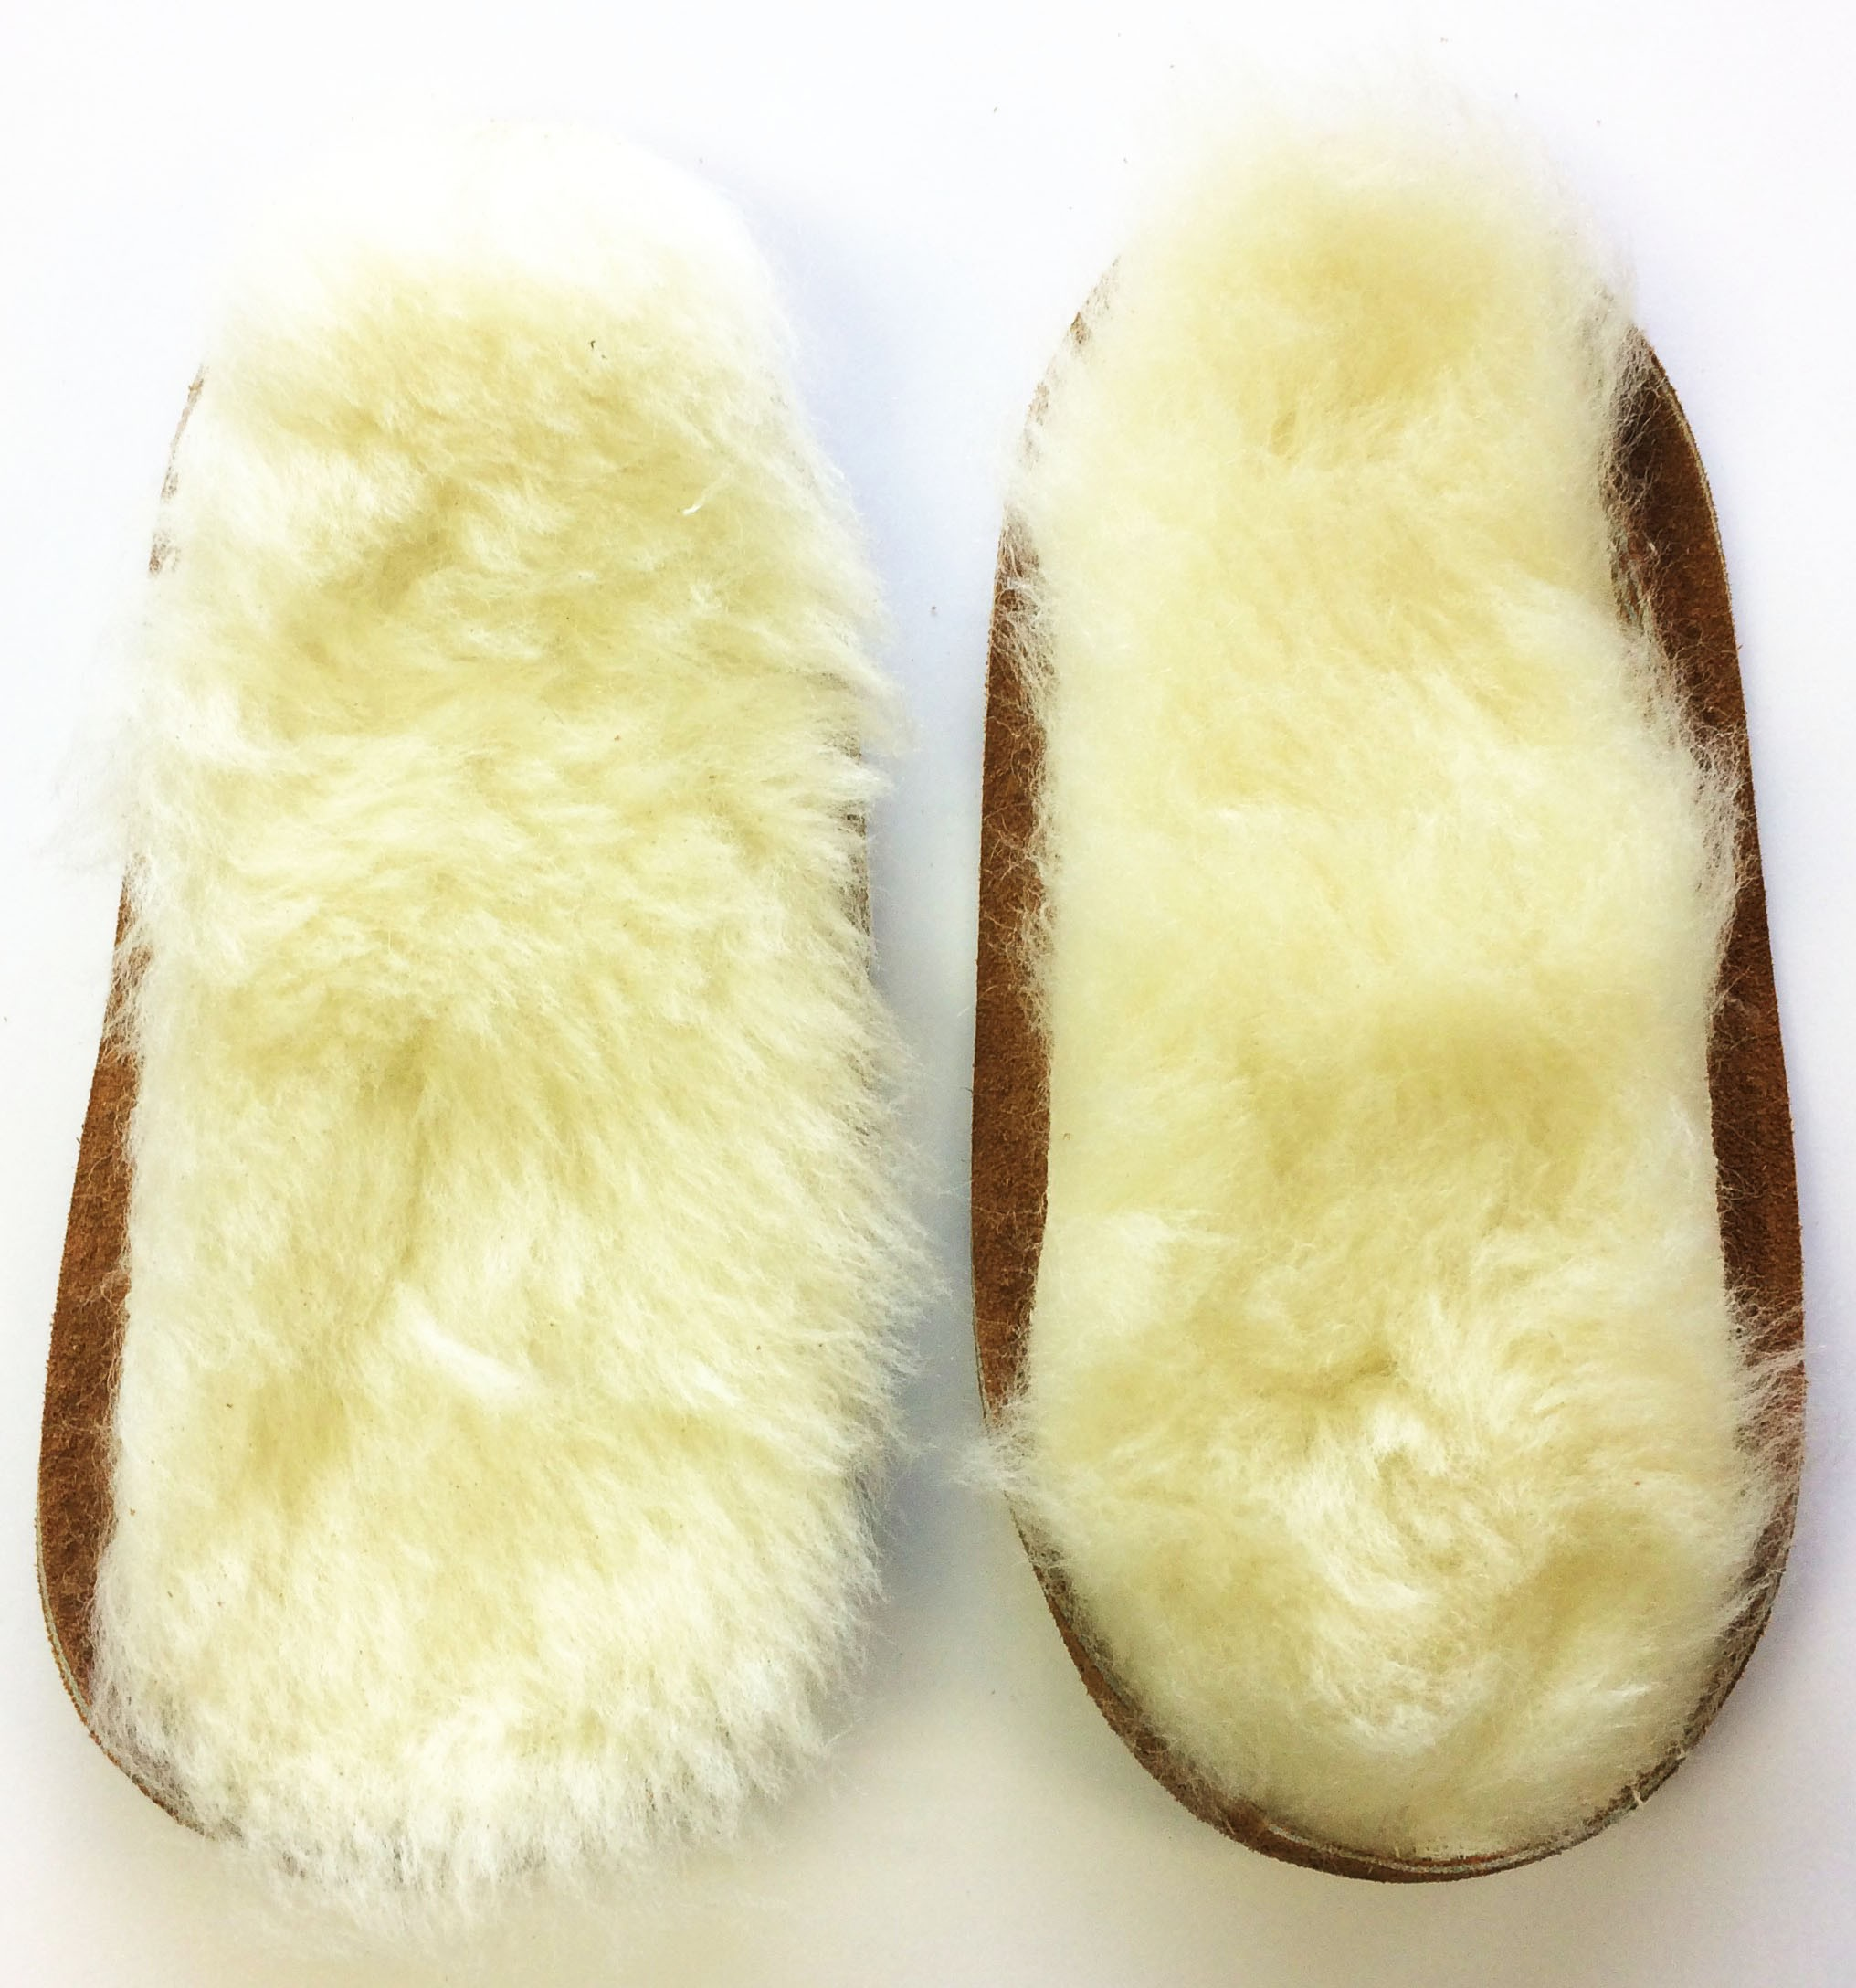 Soul Comfort - Leather Soles & Wool Insoles, Youth Size 4, Tan (ON SALE - 25% OFF!)